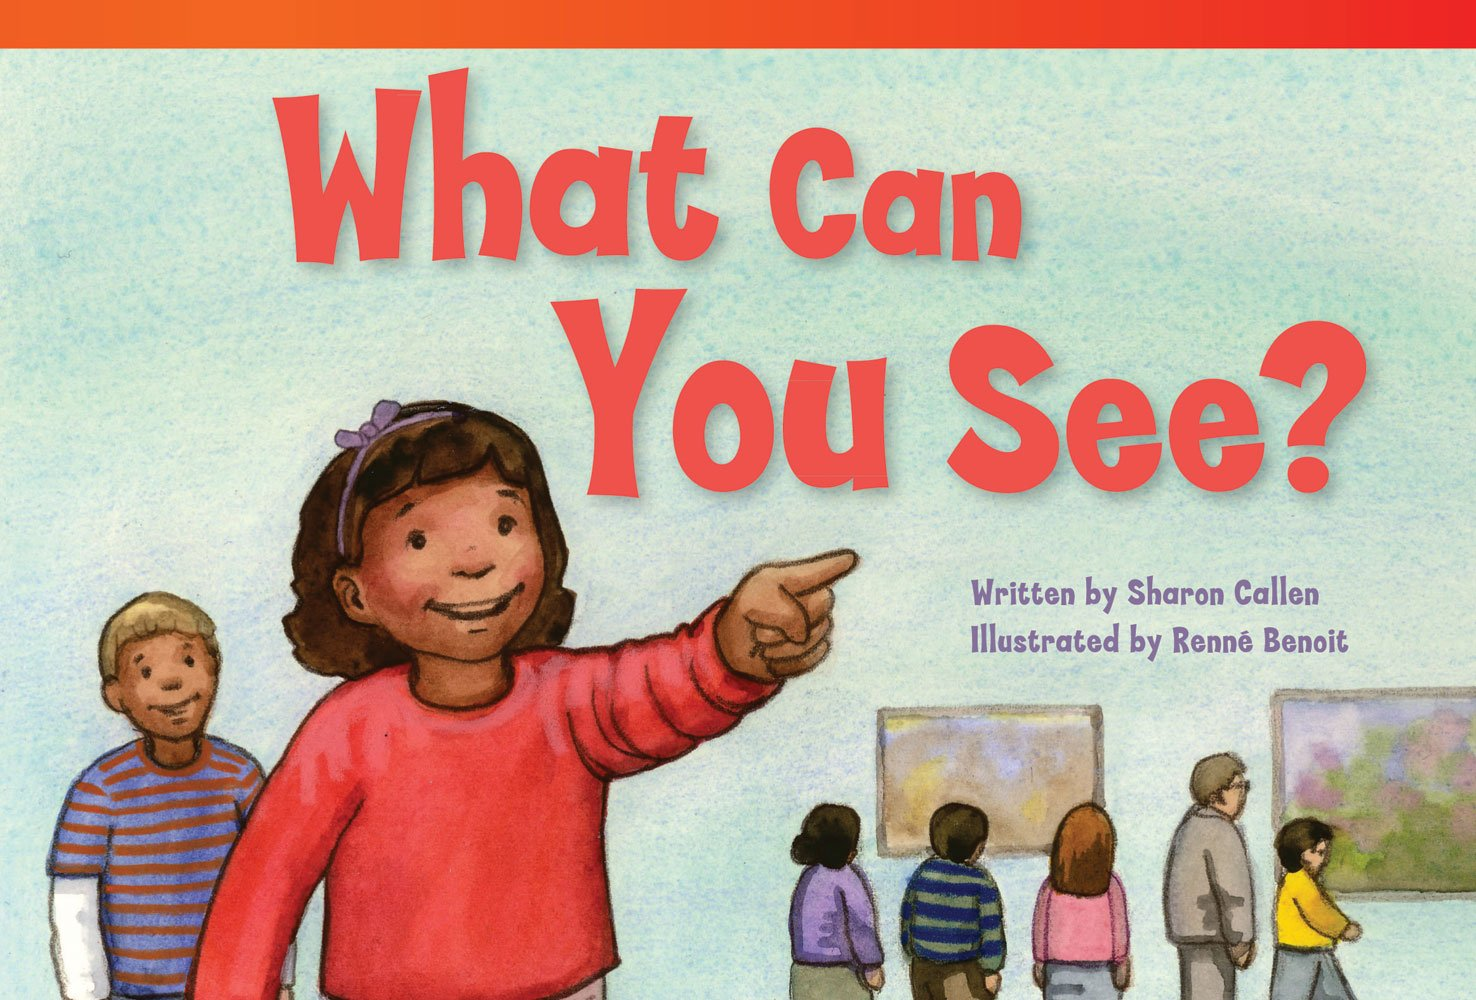 Teacher Created Materials - Literary Text: What Can You See? - Grade 1 - Guided Reading Level G (Read! Explore! Imagine! Fiction Readers, Level 1.7) pdf